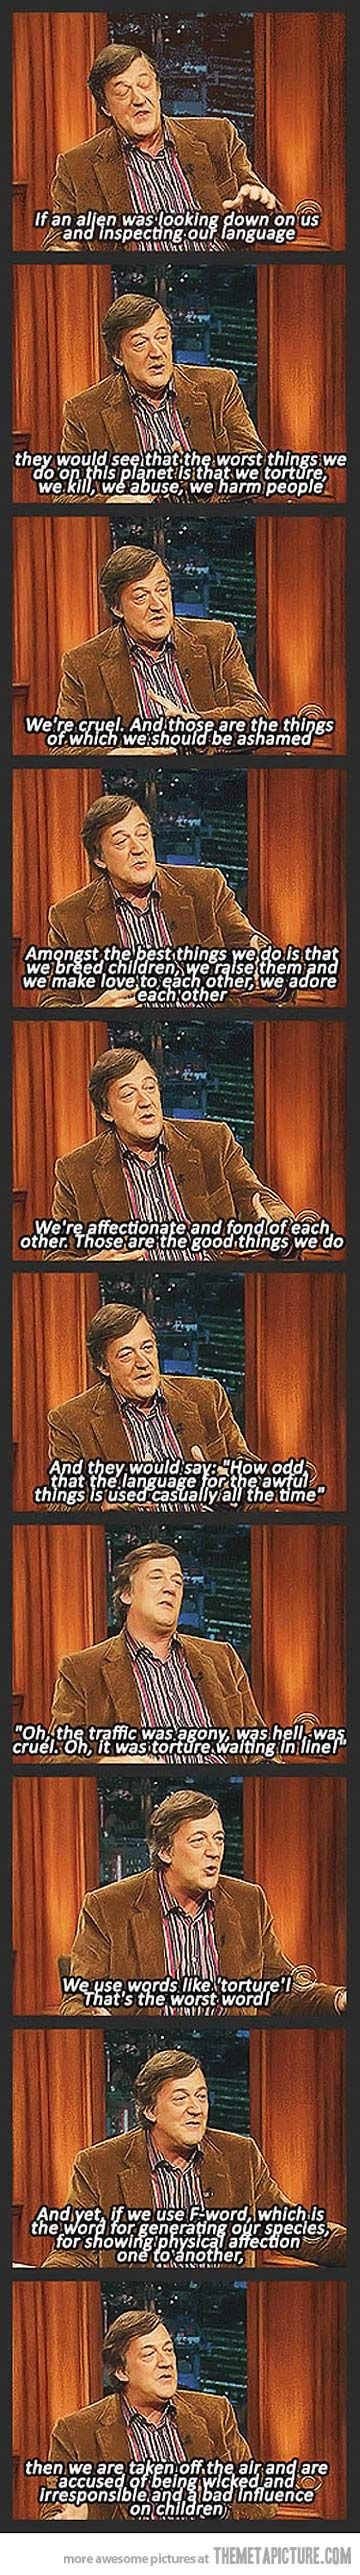 The wise and very true words of Stephen Fry…